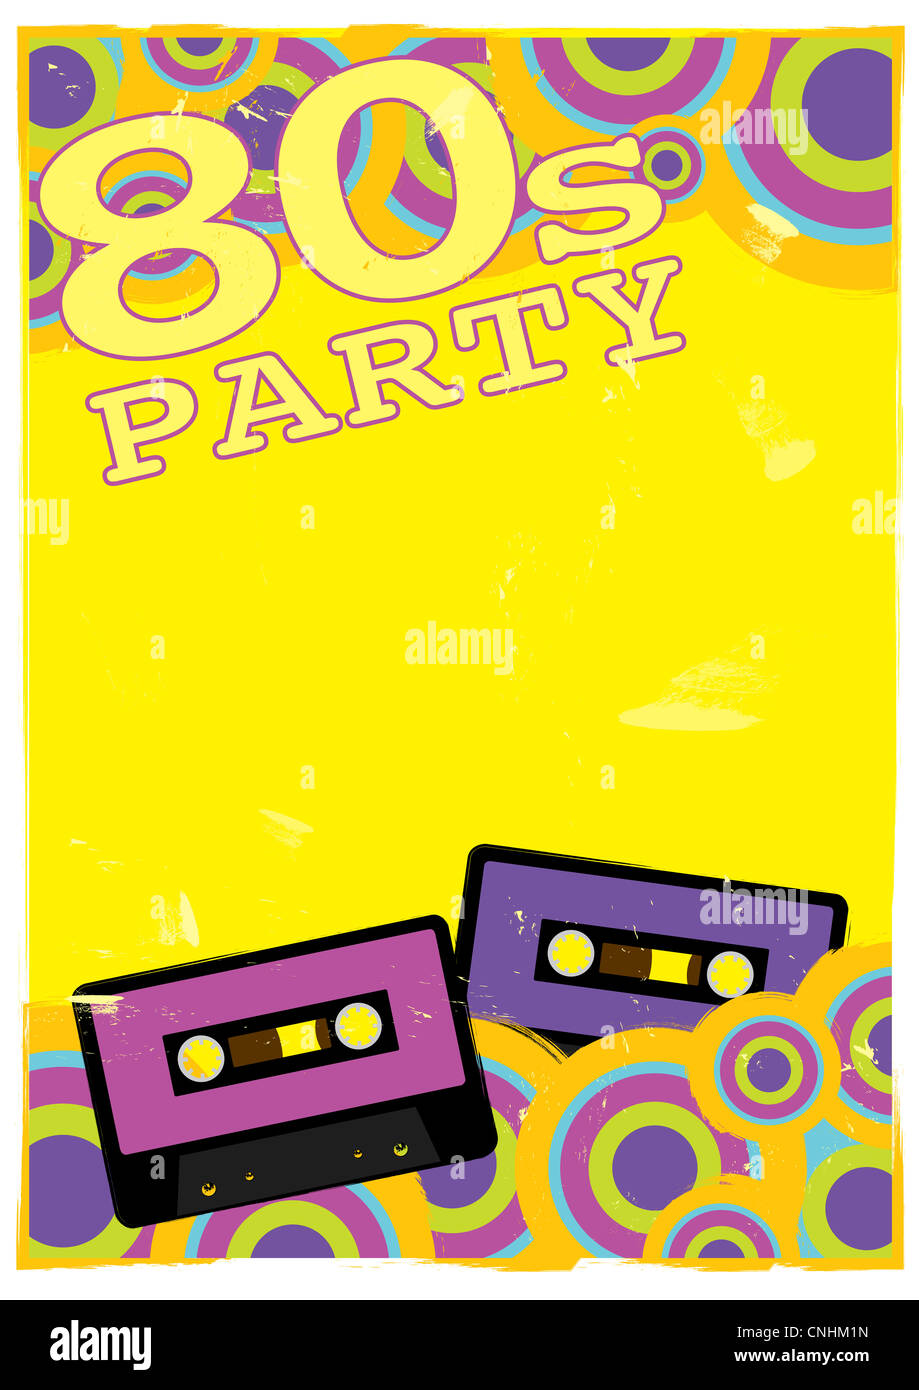 Retro Poster - 80s Party Flyer With Audio Cassette Tape - Stock Image